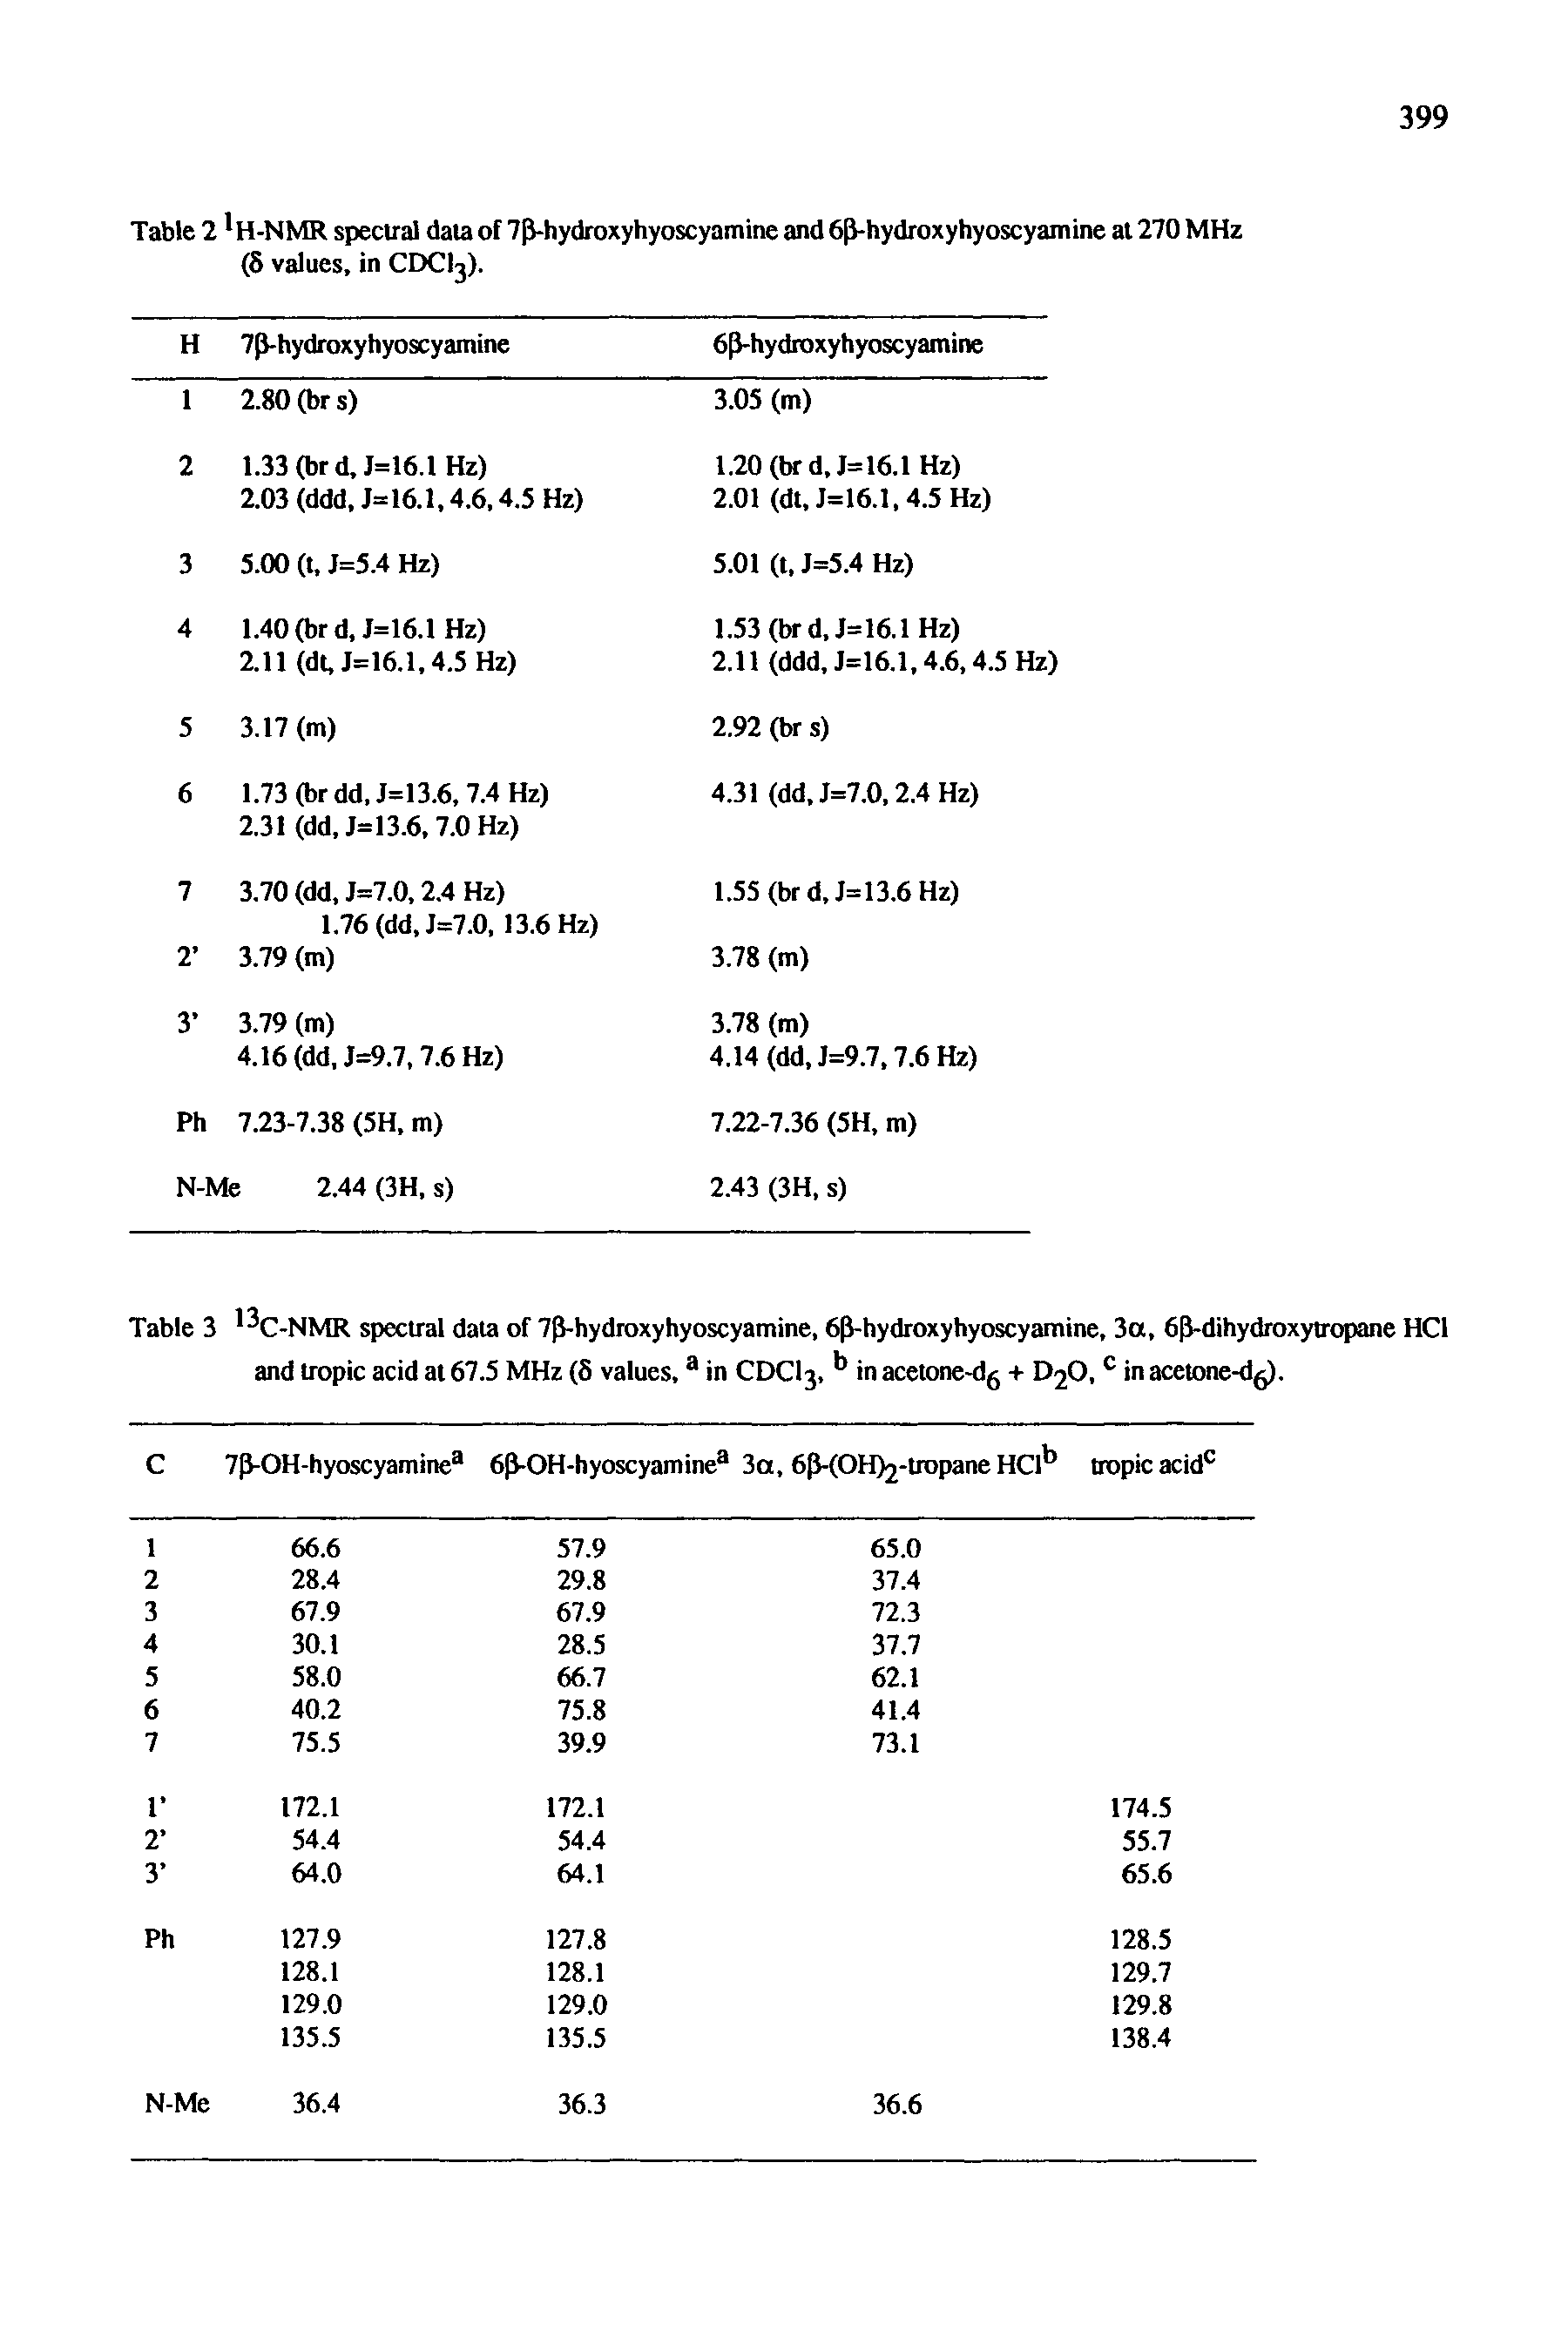 Table 2 H-NMR spectral data of 7P-hydroxyhyoscyamme and 6p-hydroxyhyoscyamine at 270 MHz (5 values, in CDClj).